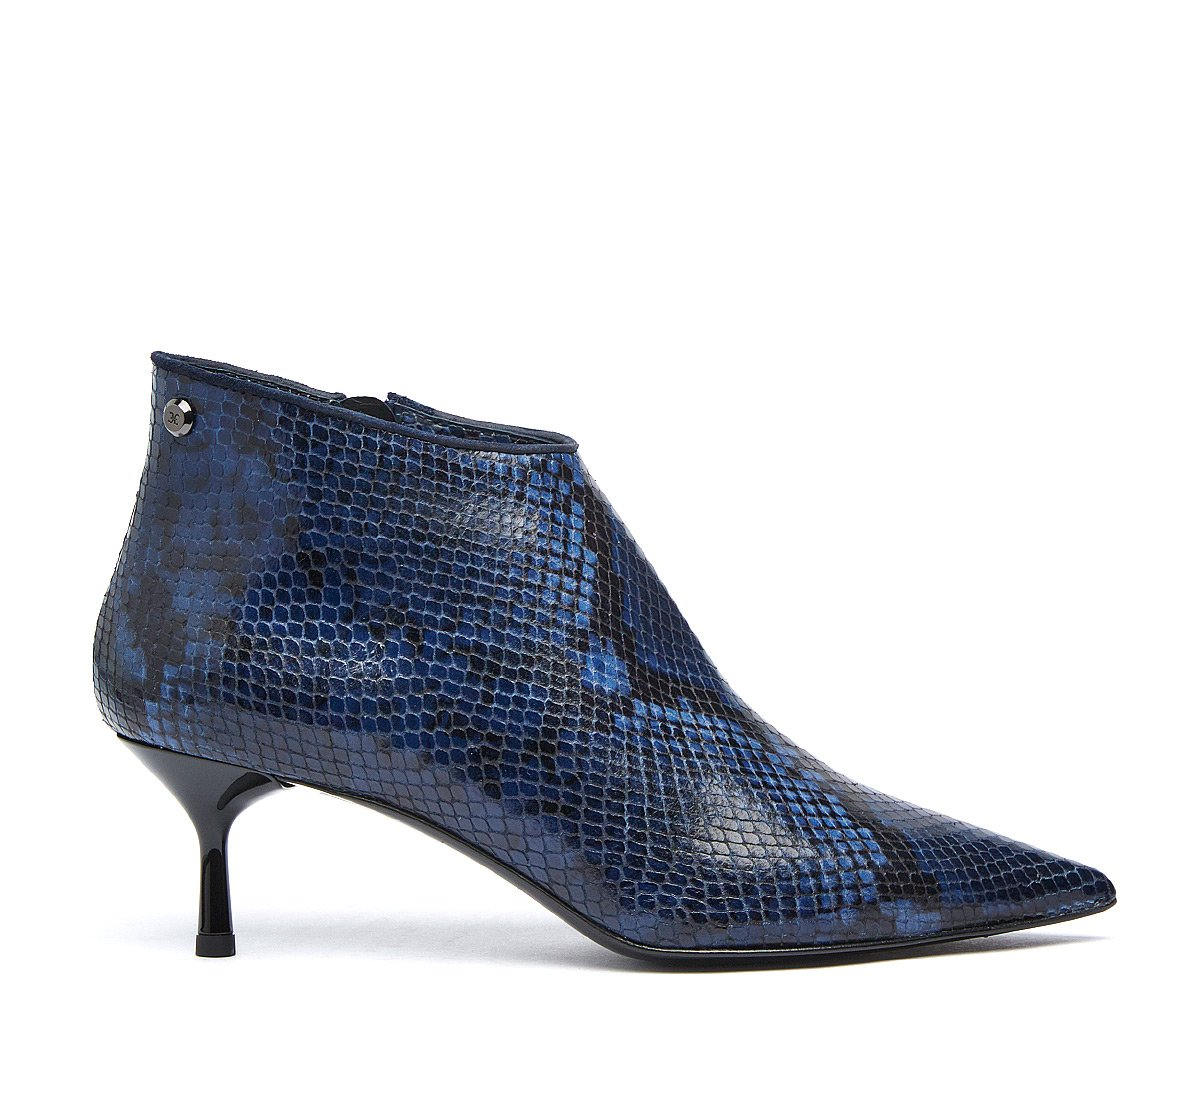 Python print calf leather ankle boots